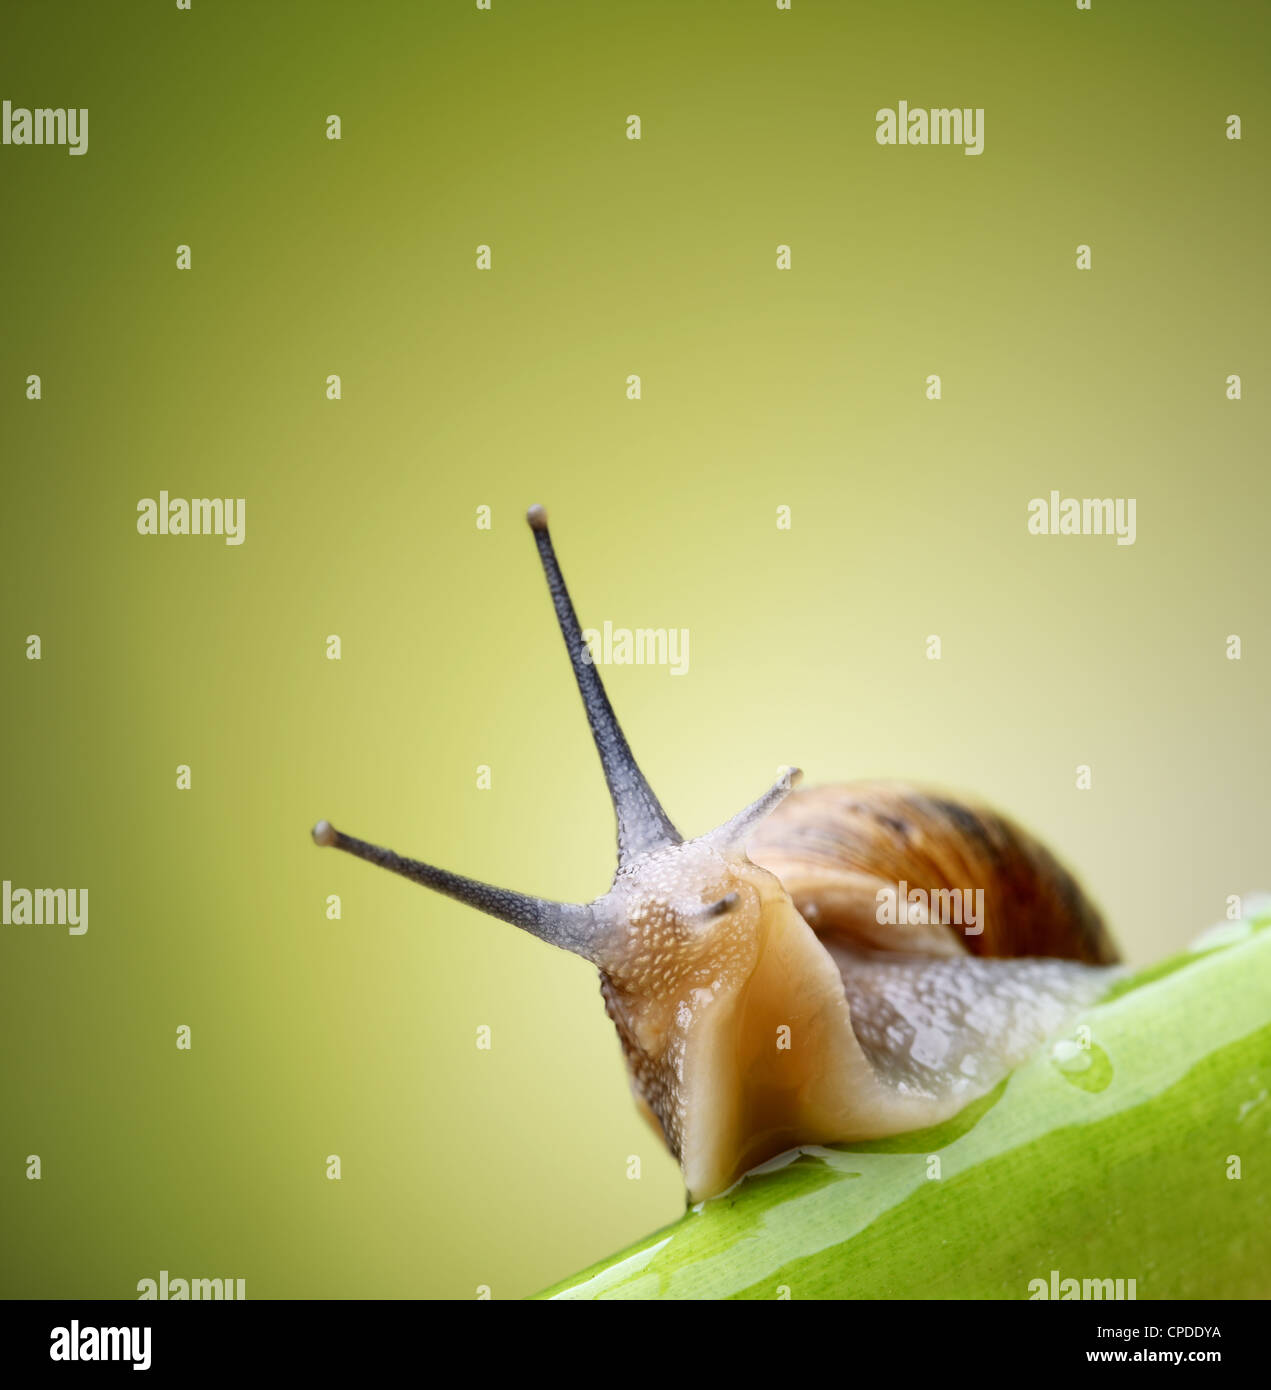 Common garden snail crawling on green stem of plant Stock Photo